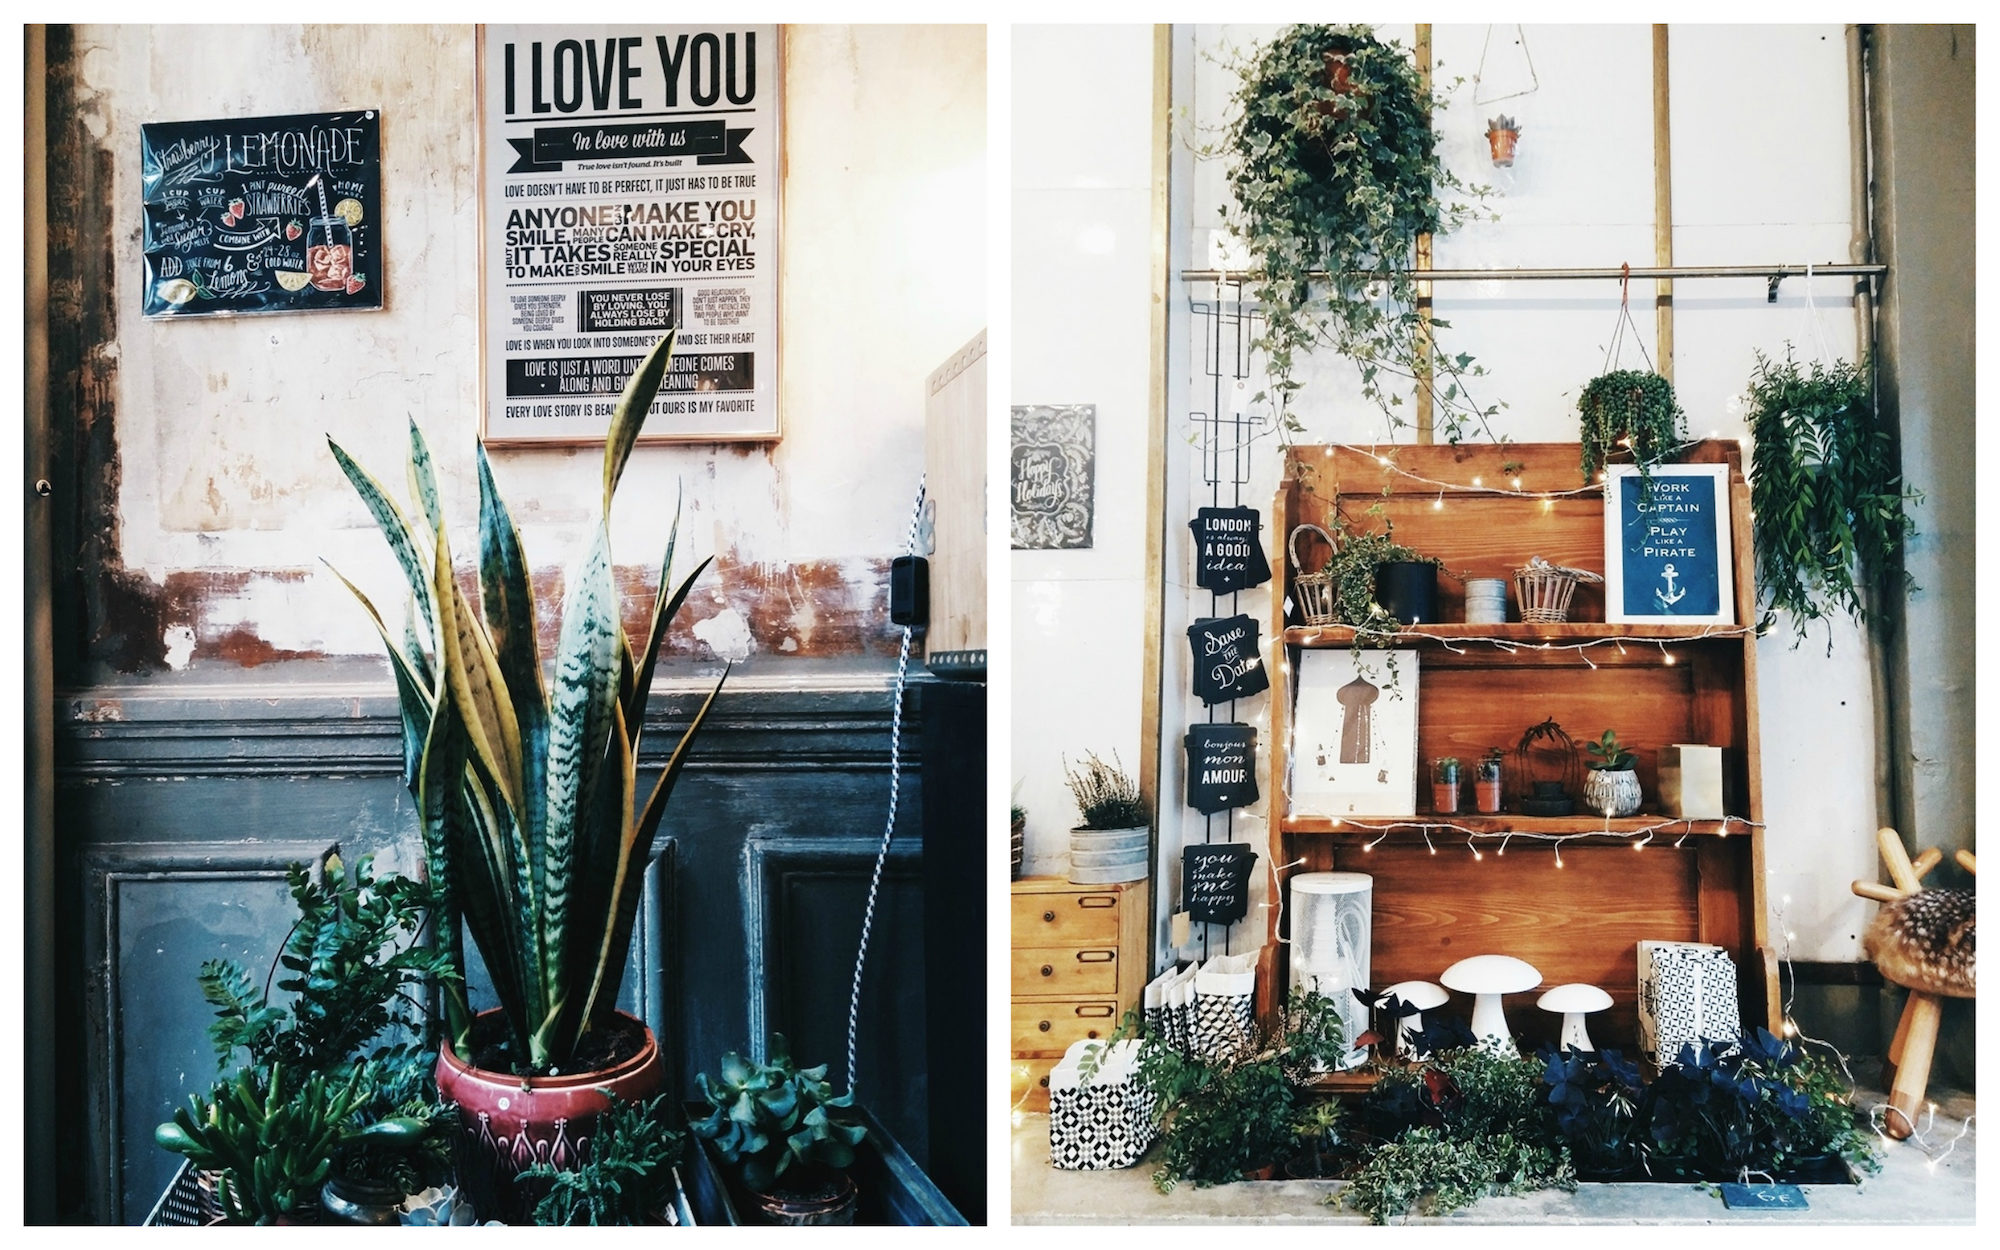 Plants and artisanal gifts like vintage posters (left) and handcrafted home decoration items (right) at Les Fleurs store in Paris.